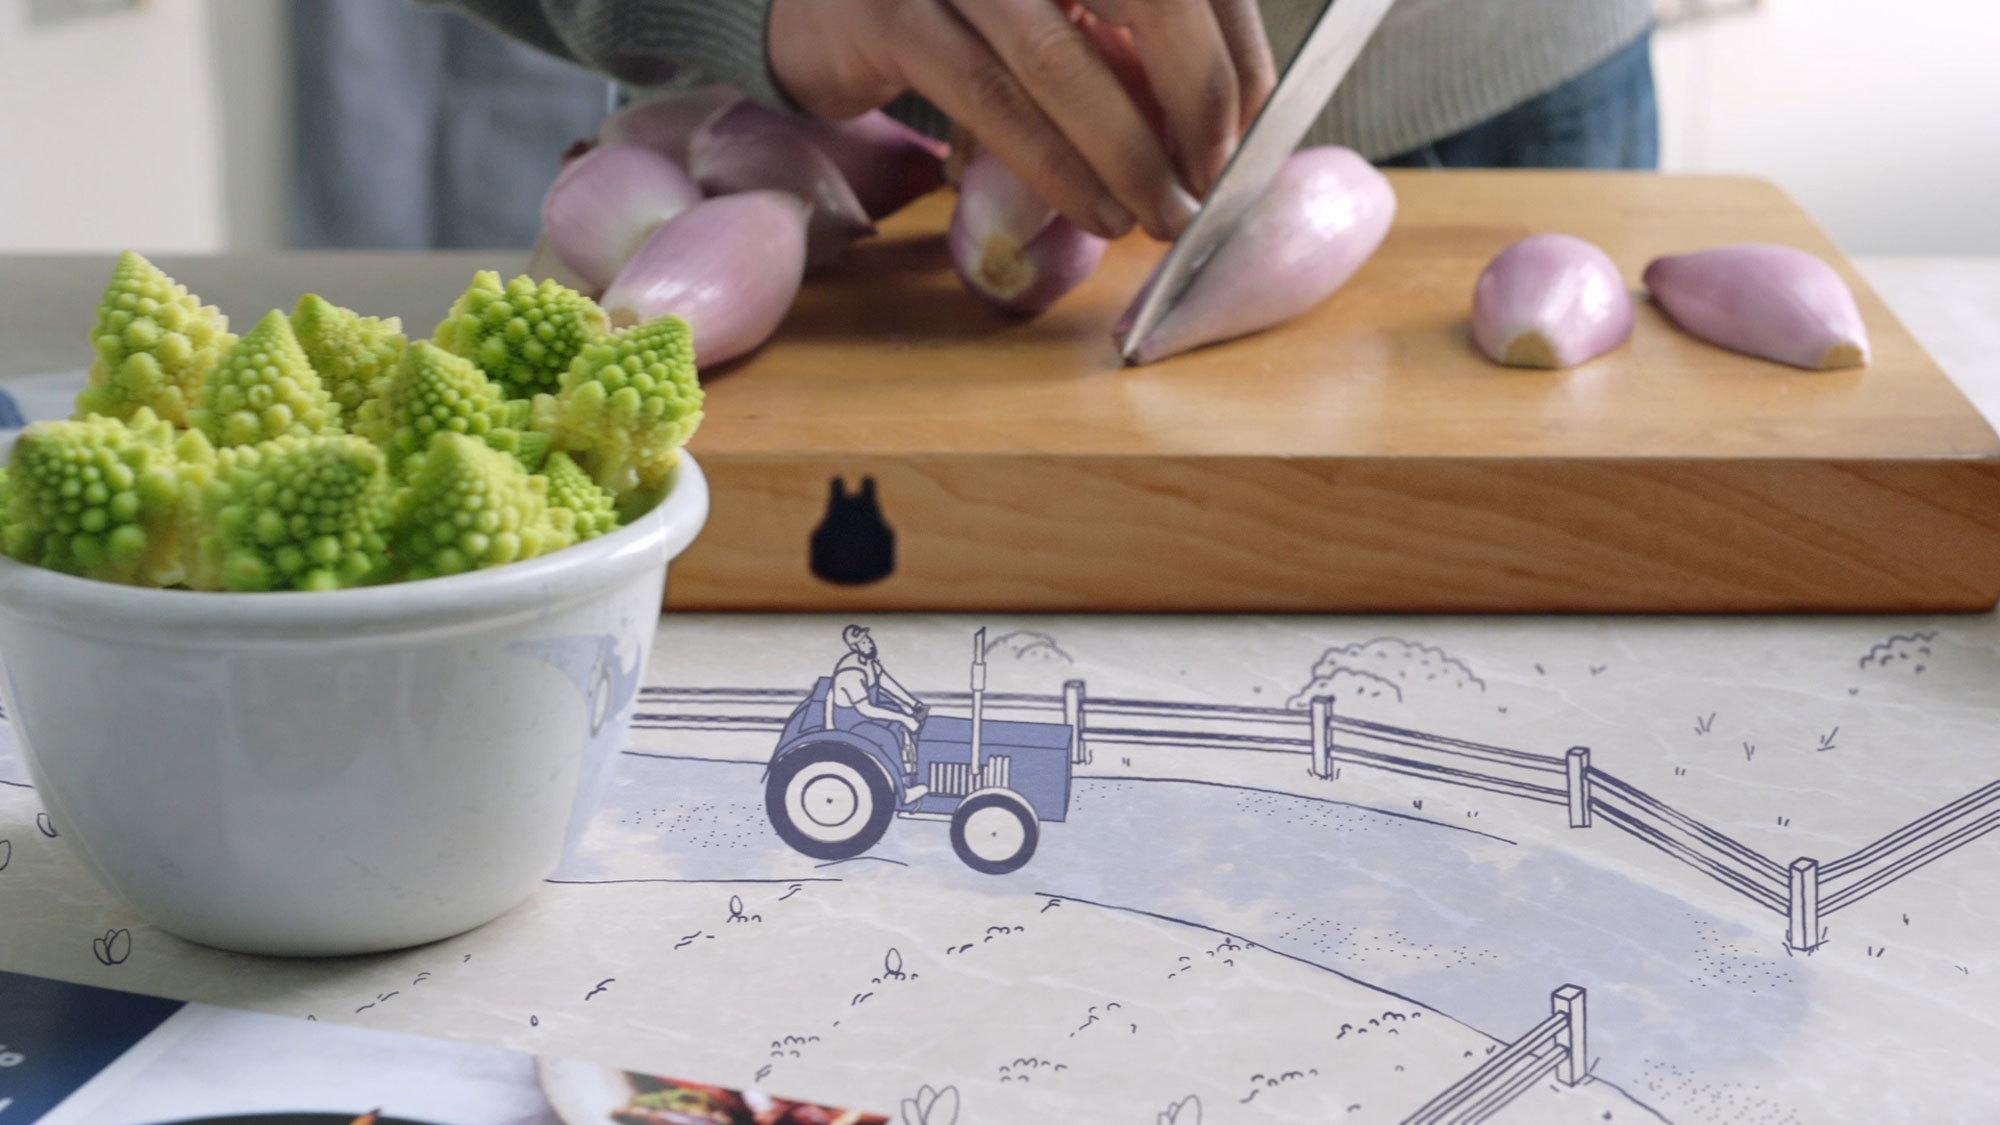 Blue apron vegetables - Take A Look At The Full Advert Here